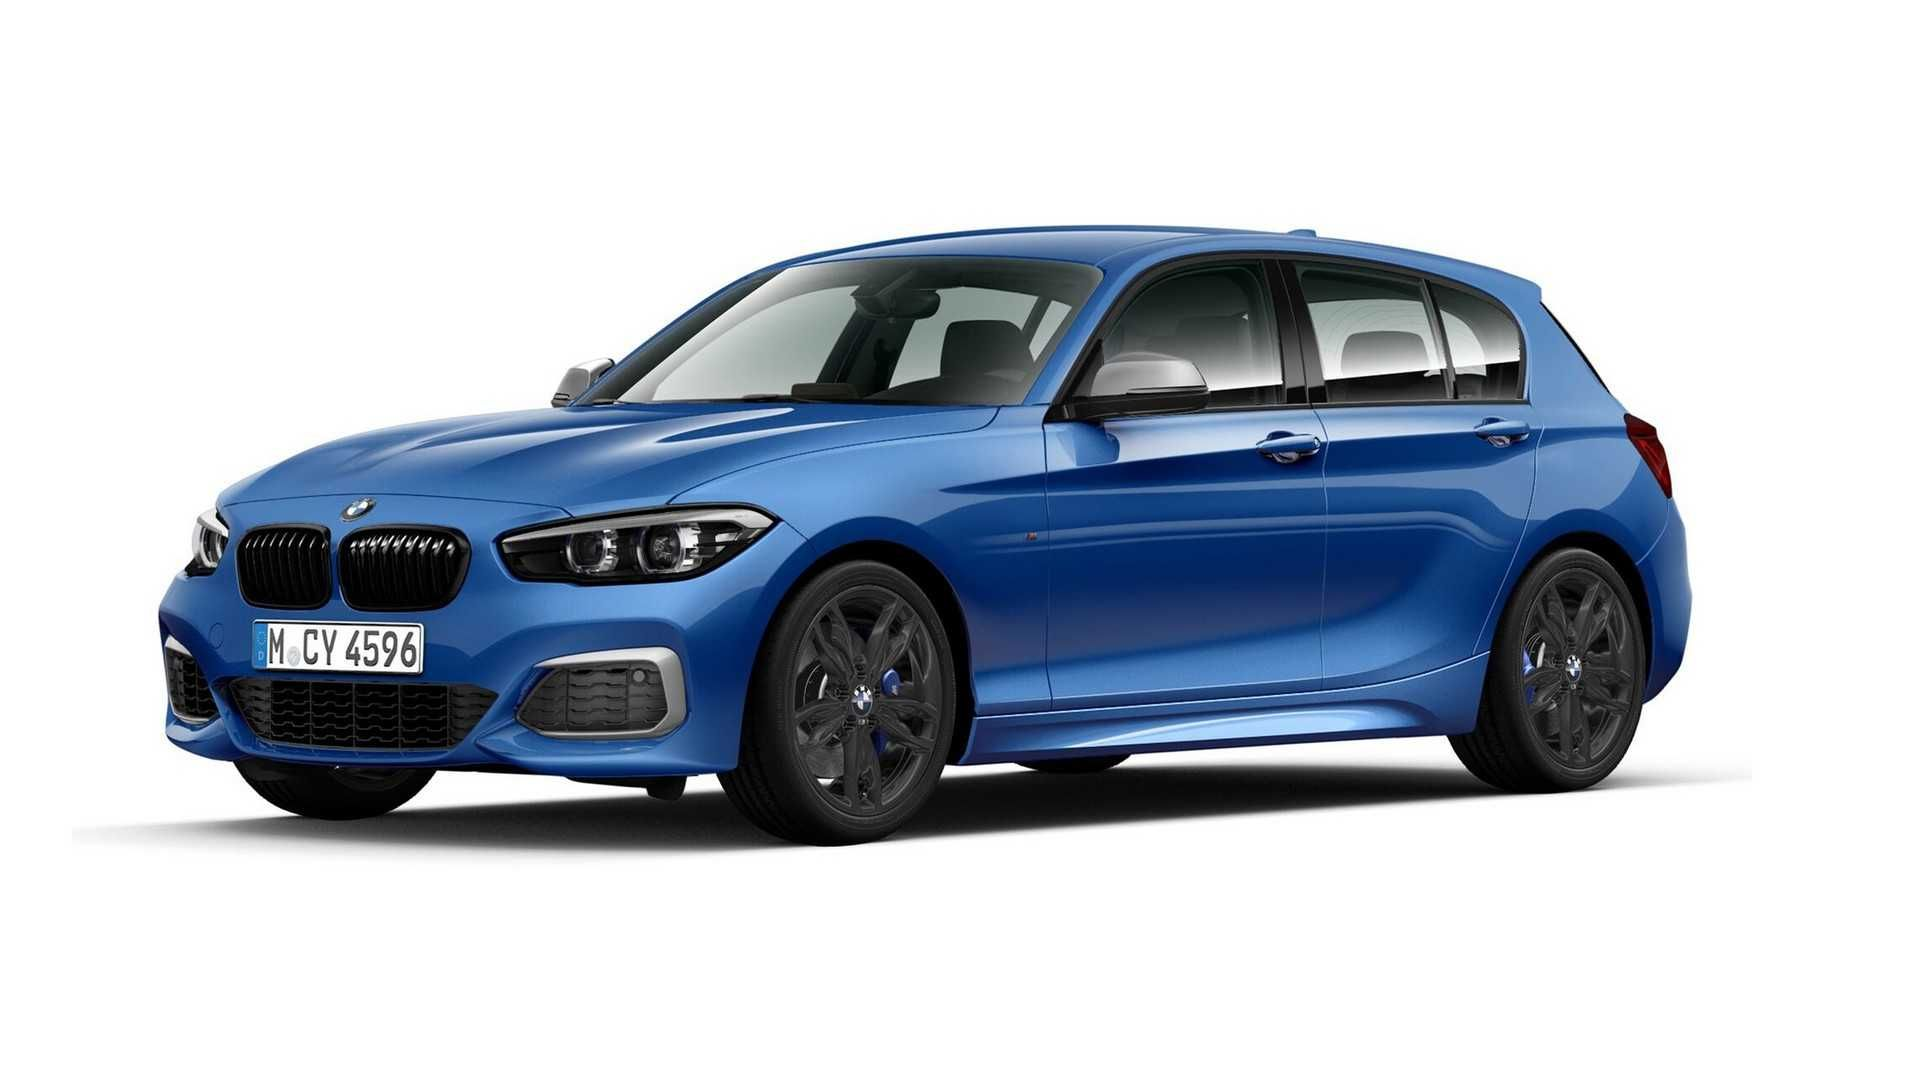 The 2019 Bmw M140i Finale Edition Is Your Last Chance To Get This